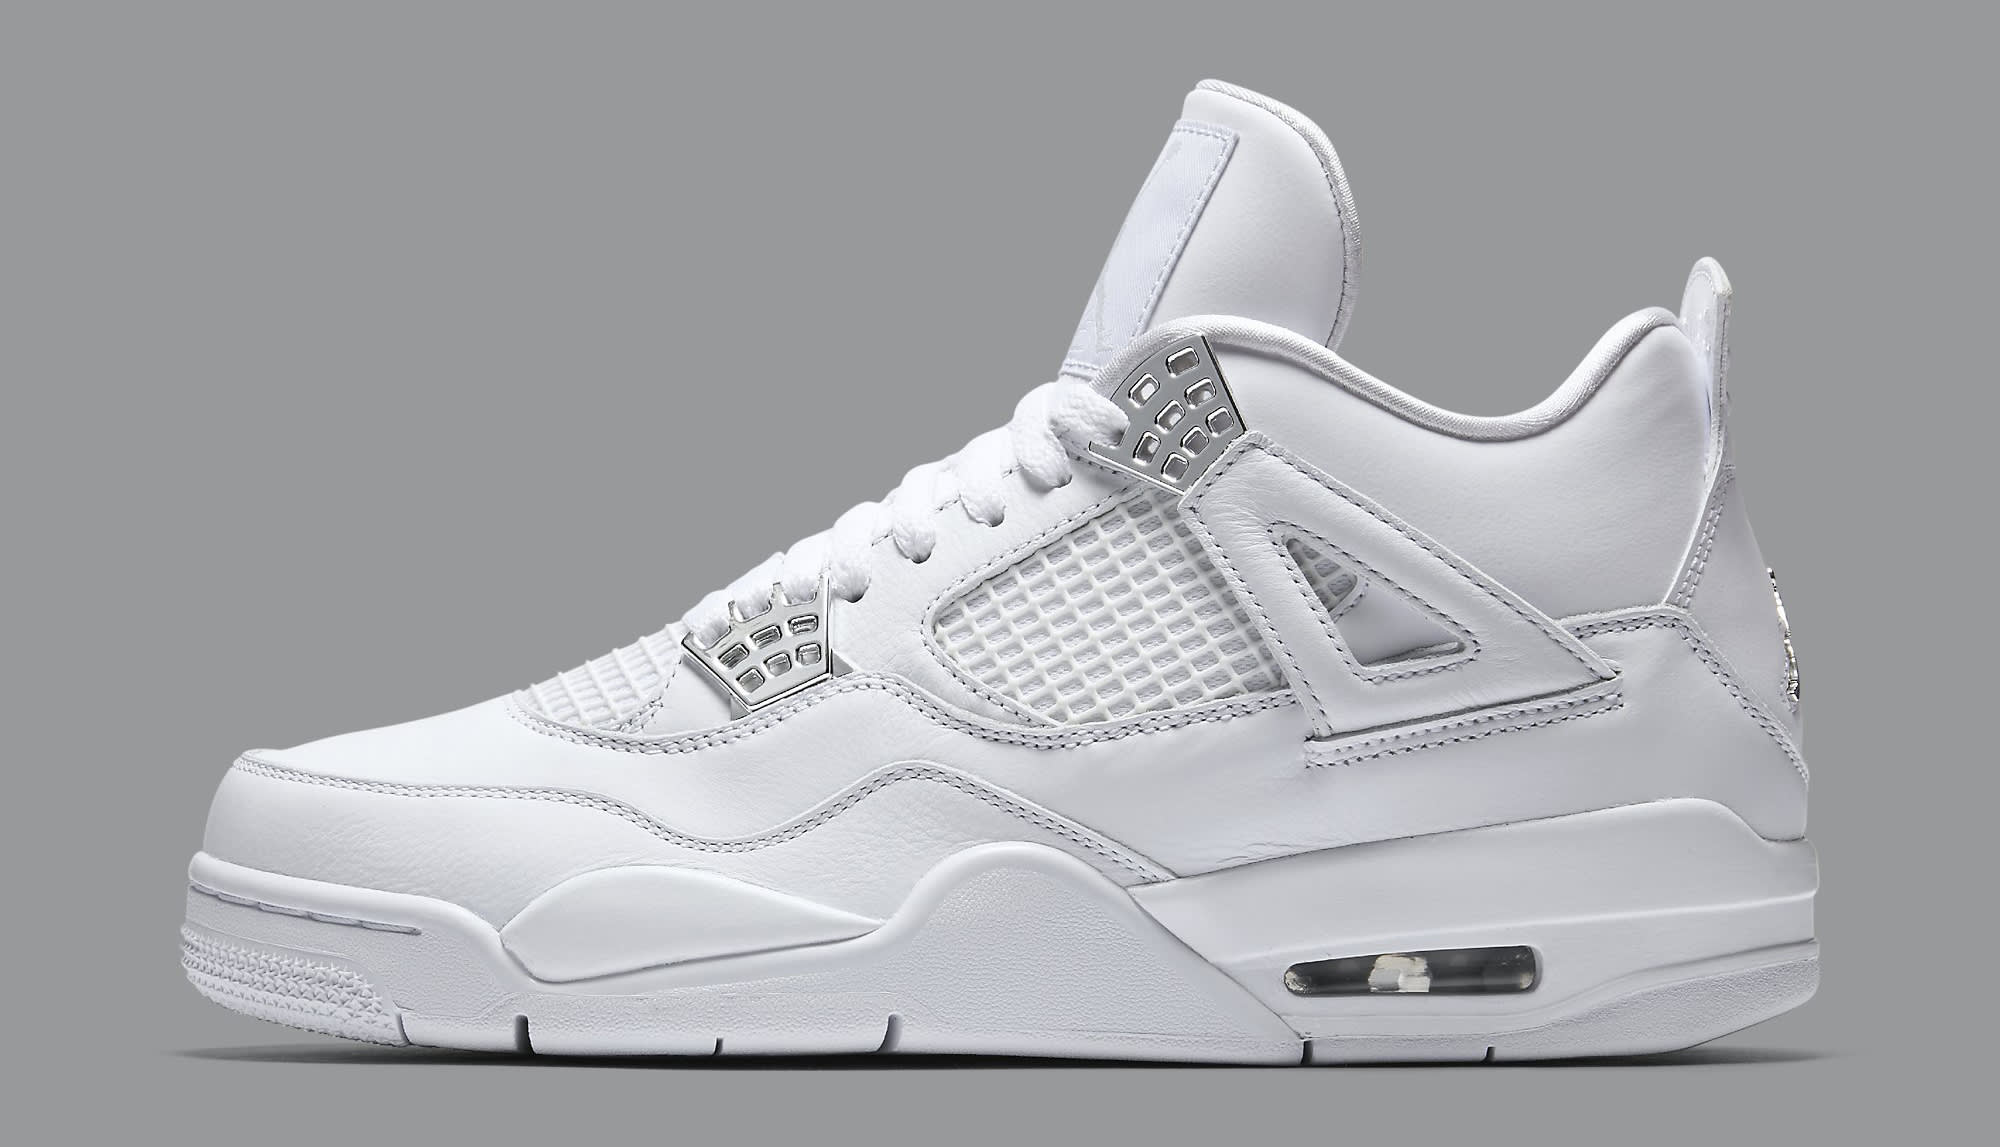 meet 0ec5d 761e2 Image via Nike Pure Money Air Jordan 4 308497-100 Profile